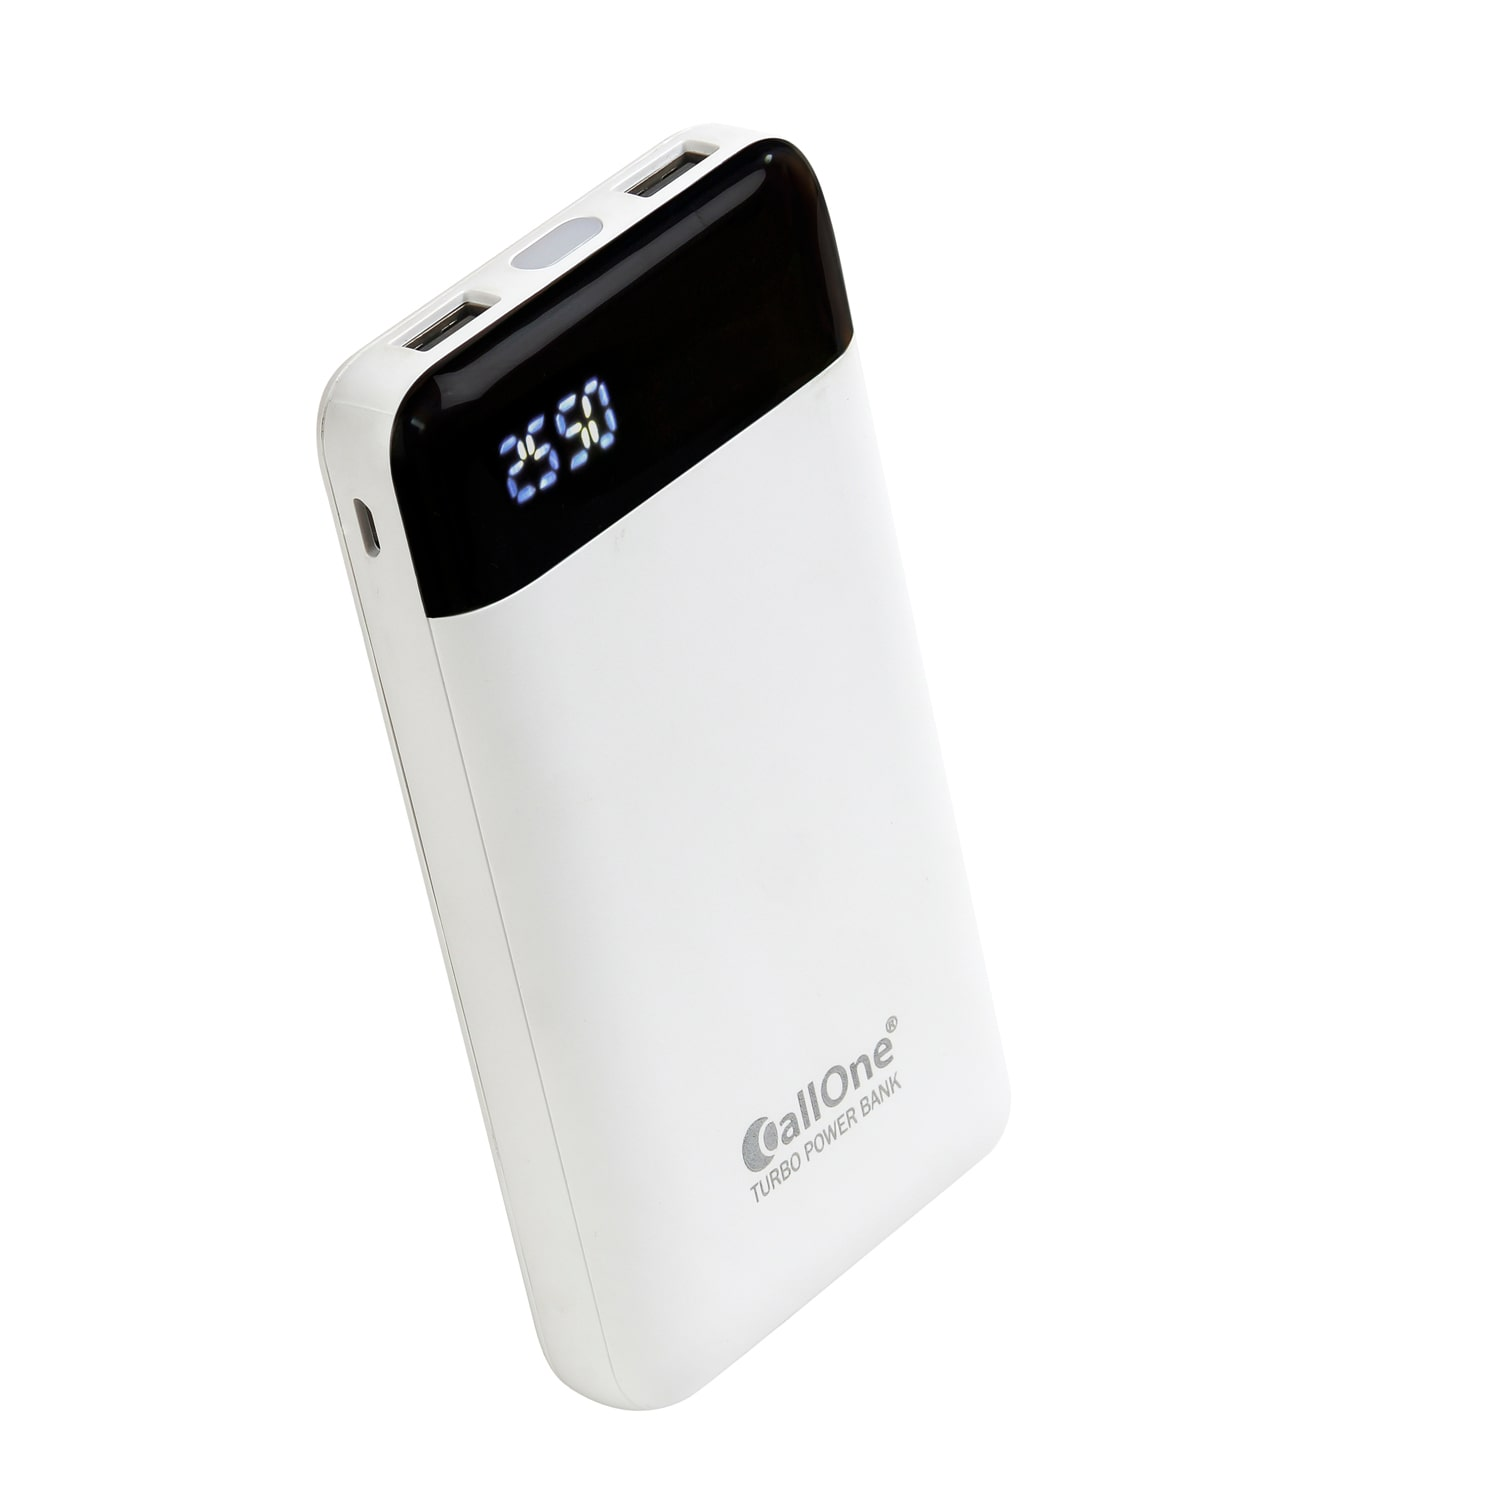 CallOne COPB 125 12000 mAh Portable Power Bank   White